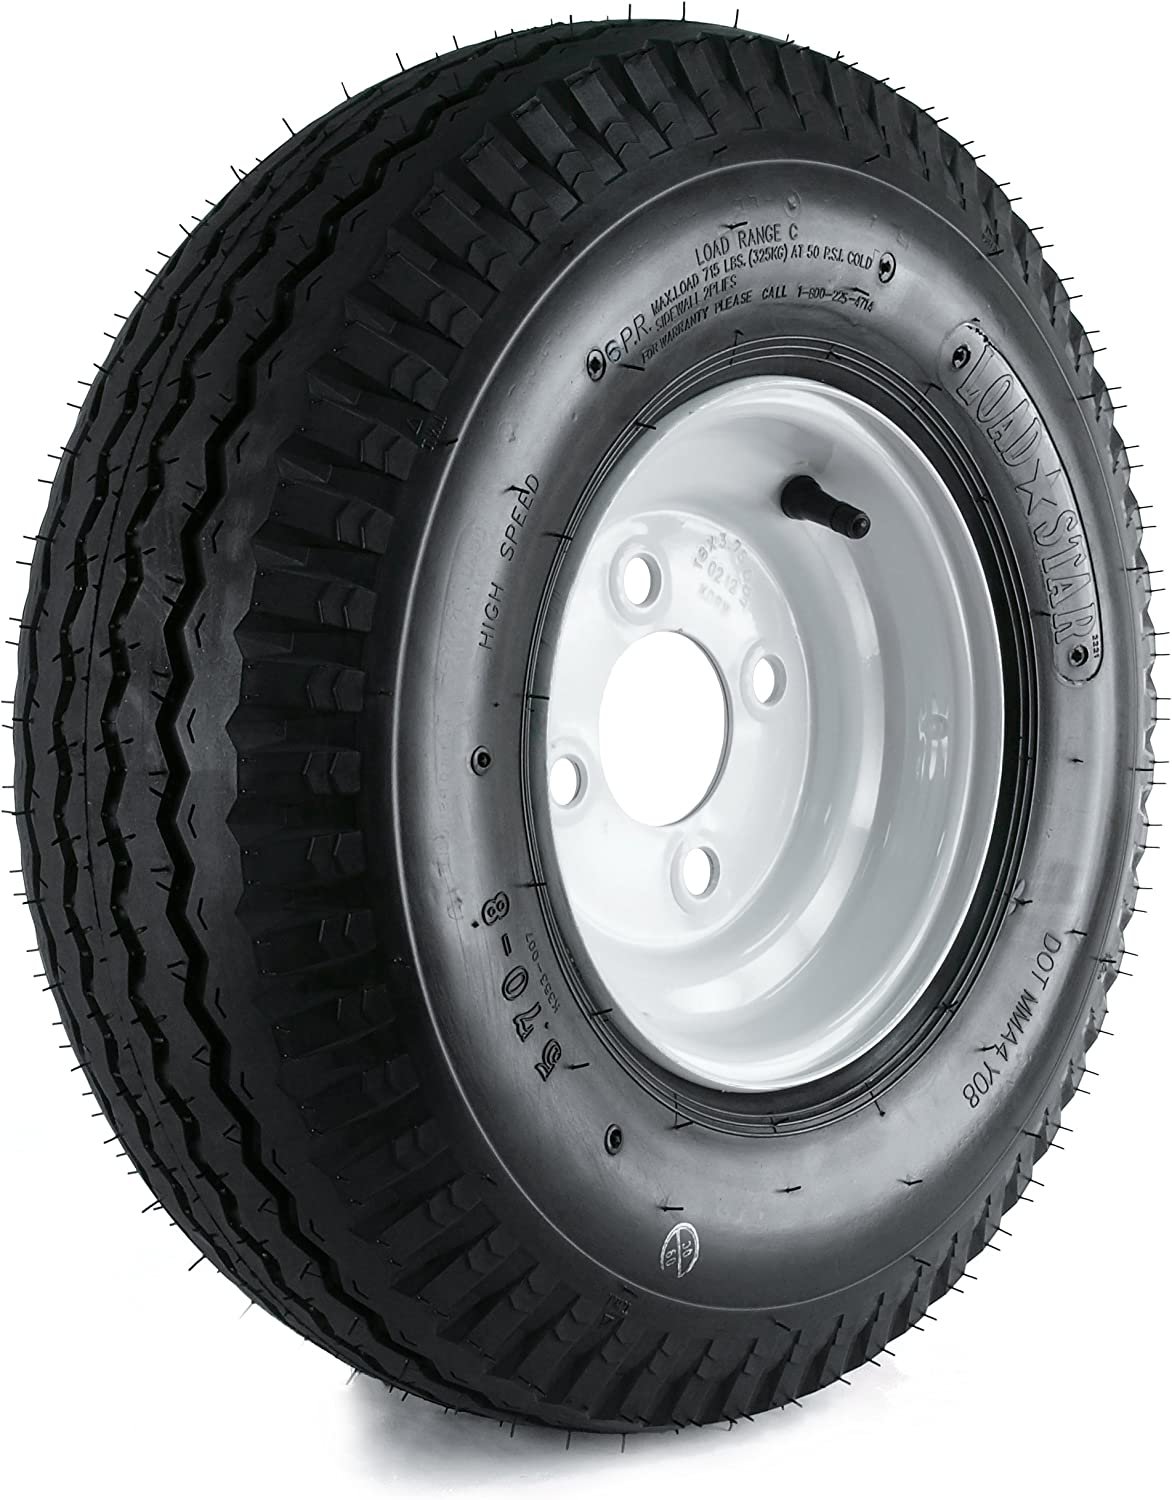 Kenda Loadstar Bias Trailer Tire - 570-8 55C